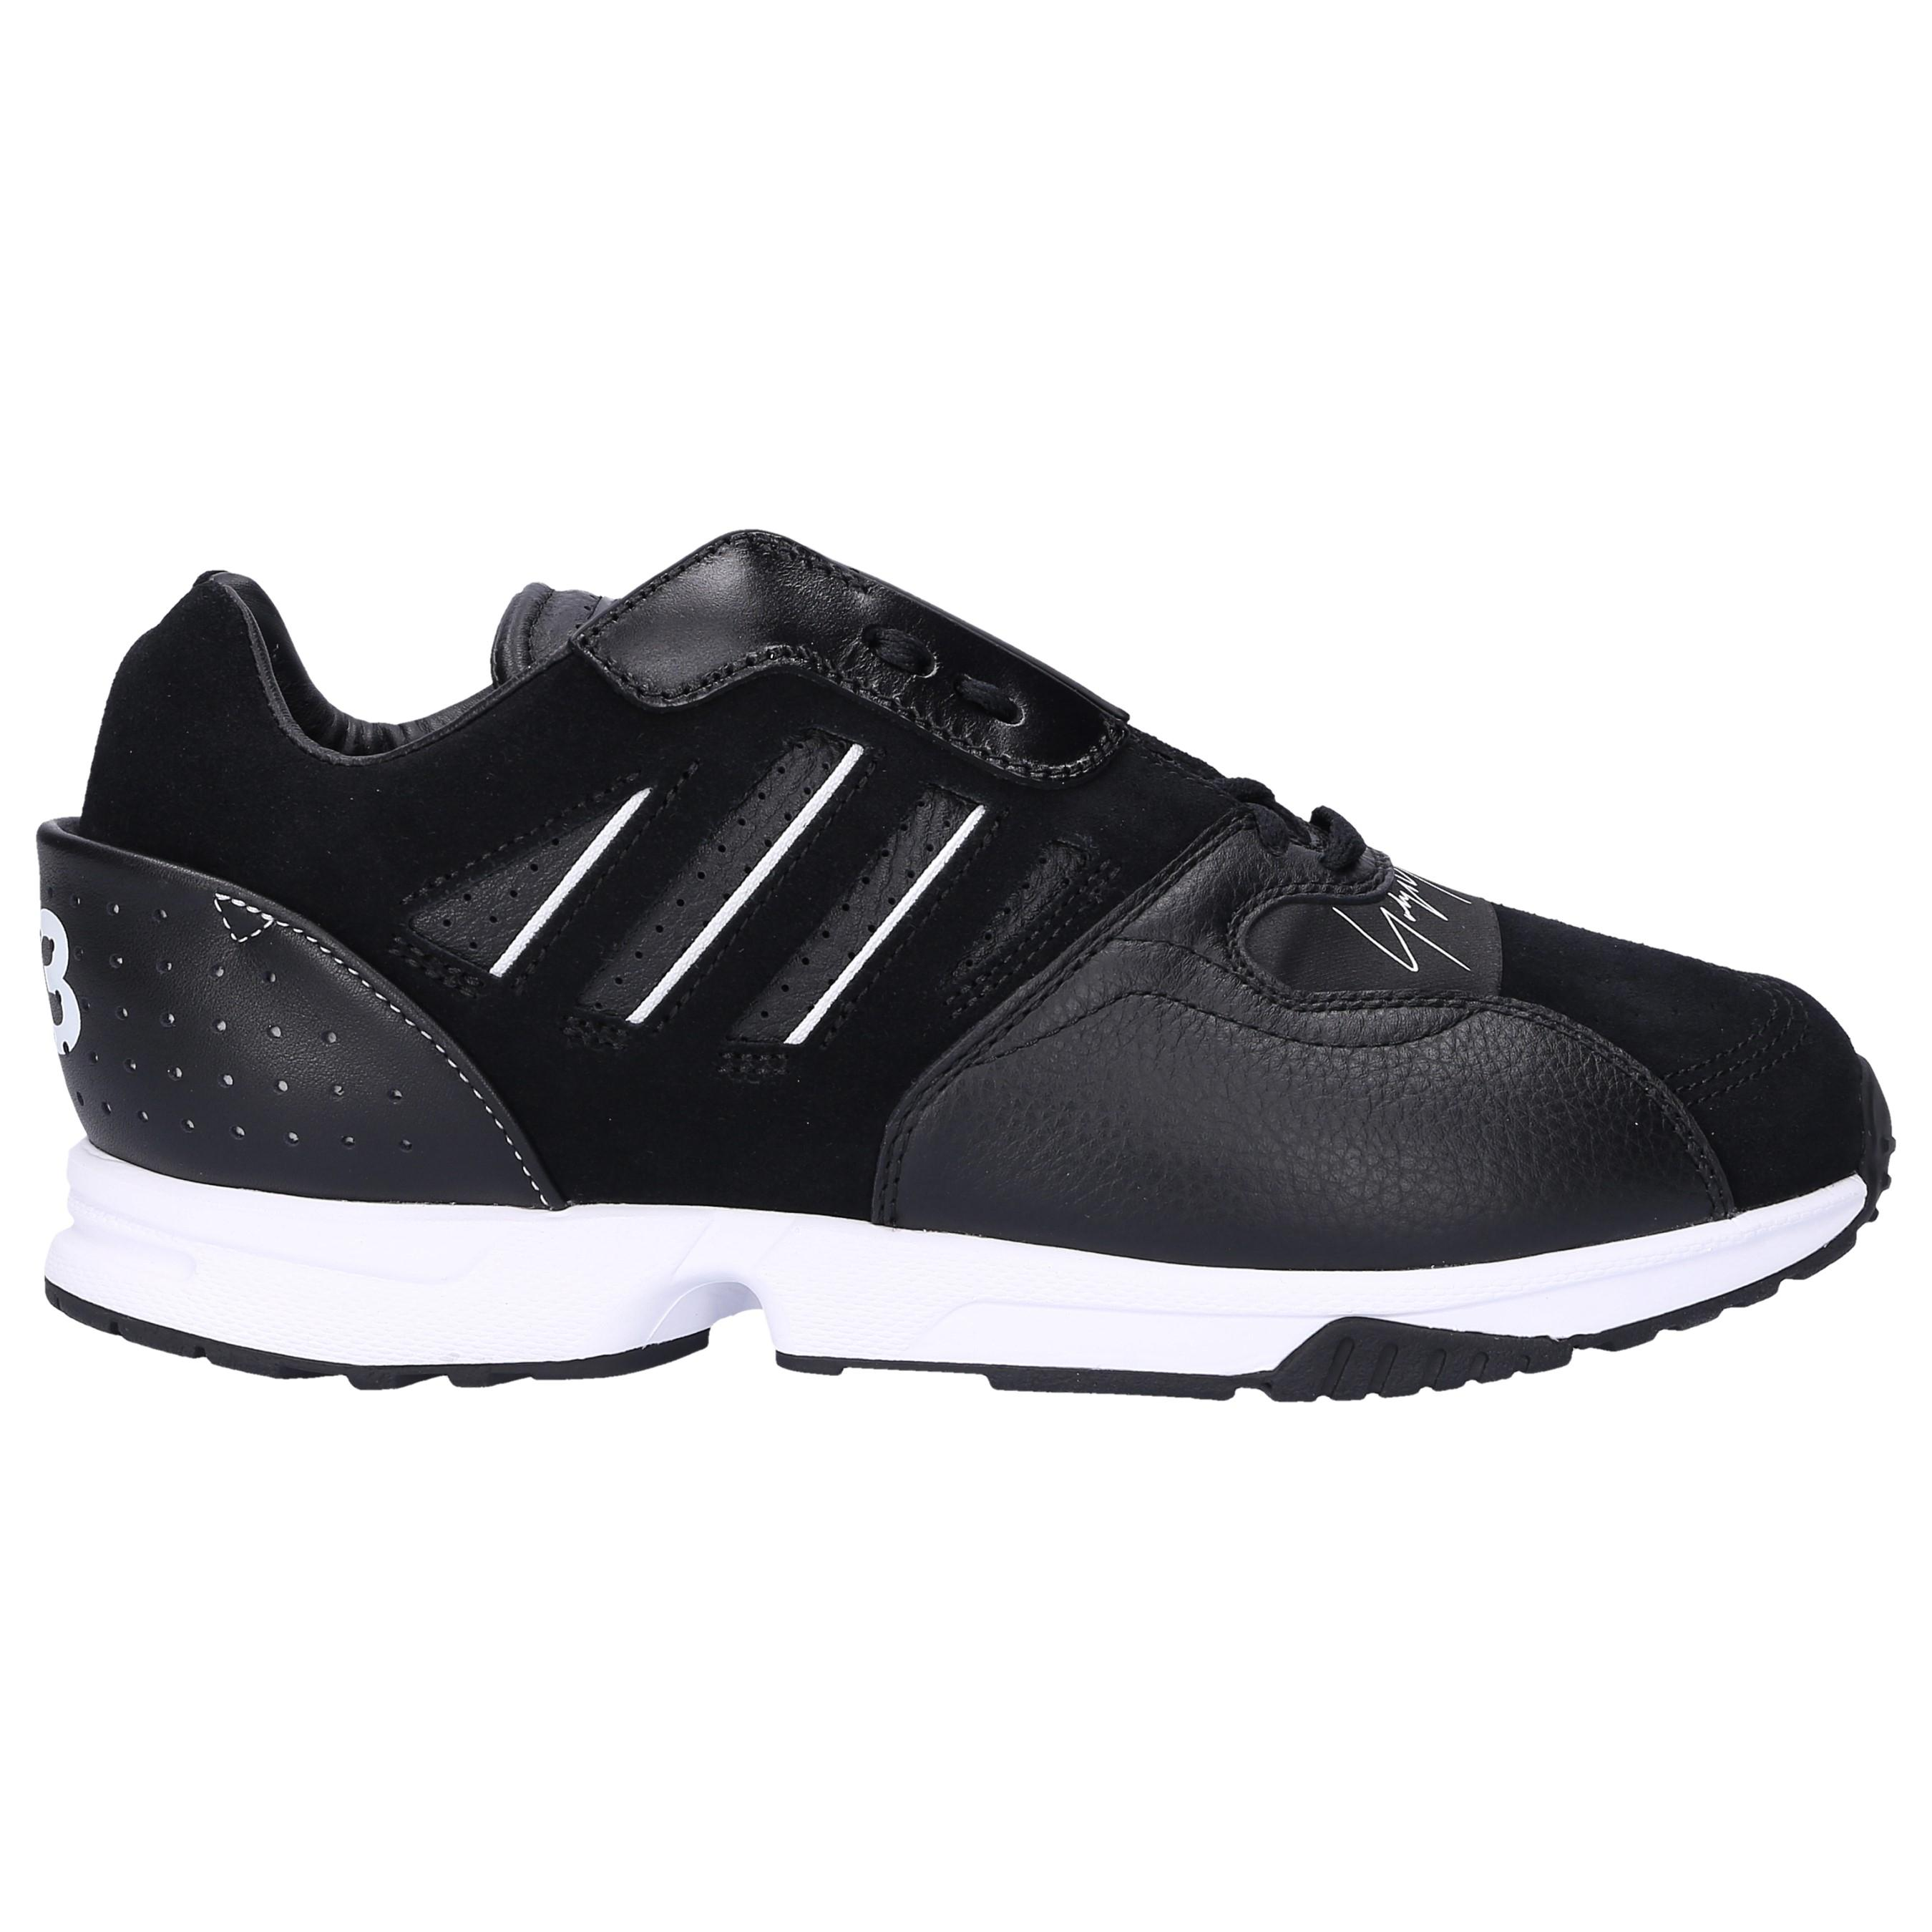 45417e8625a77 Lyst - adidas Leather Sneakers Zx Run in Black for Men